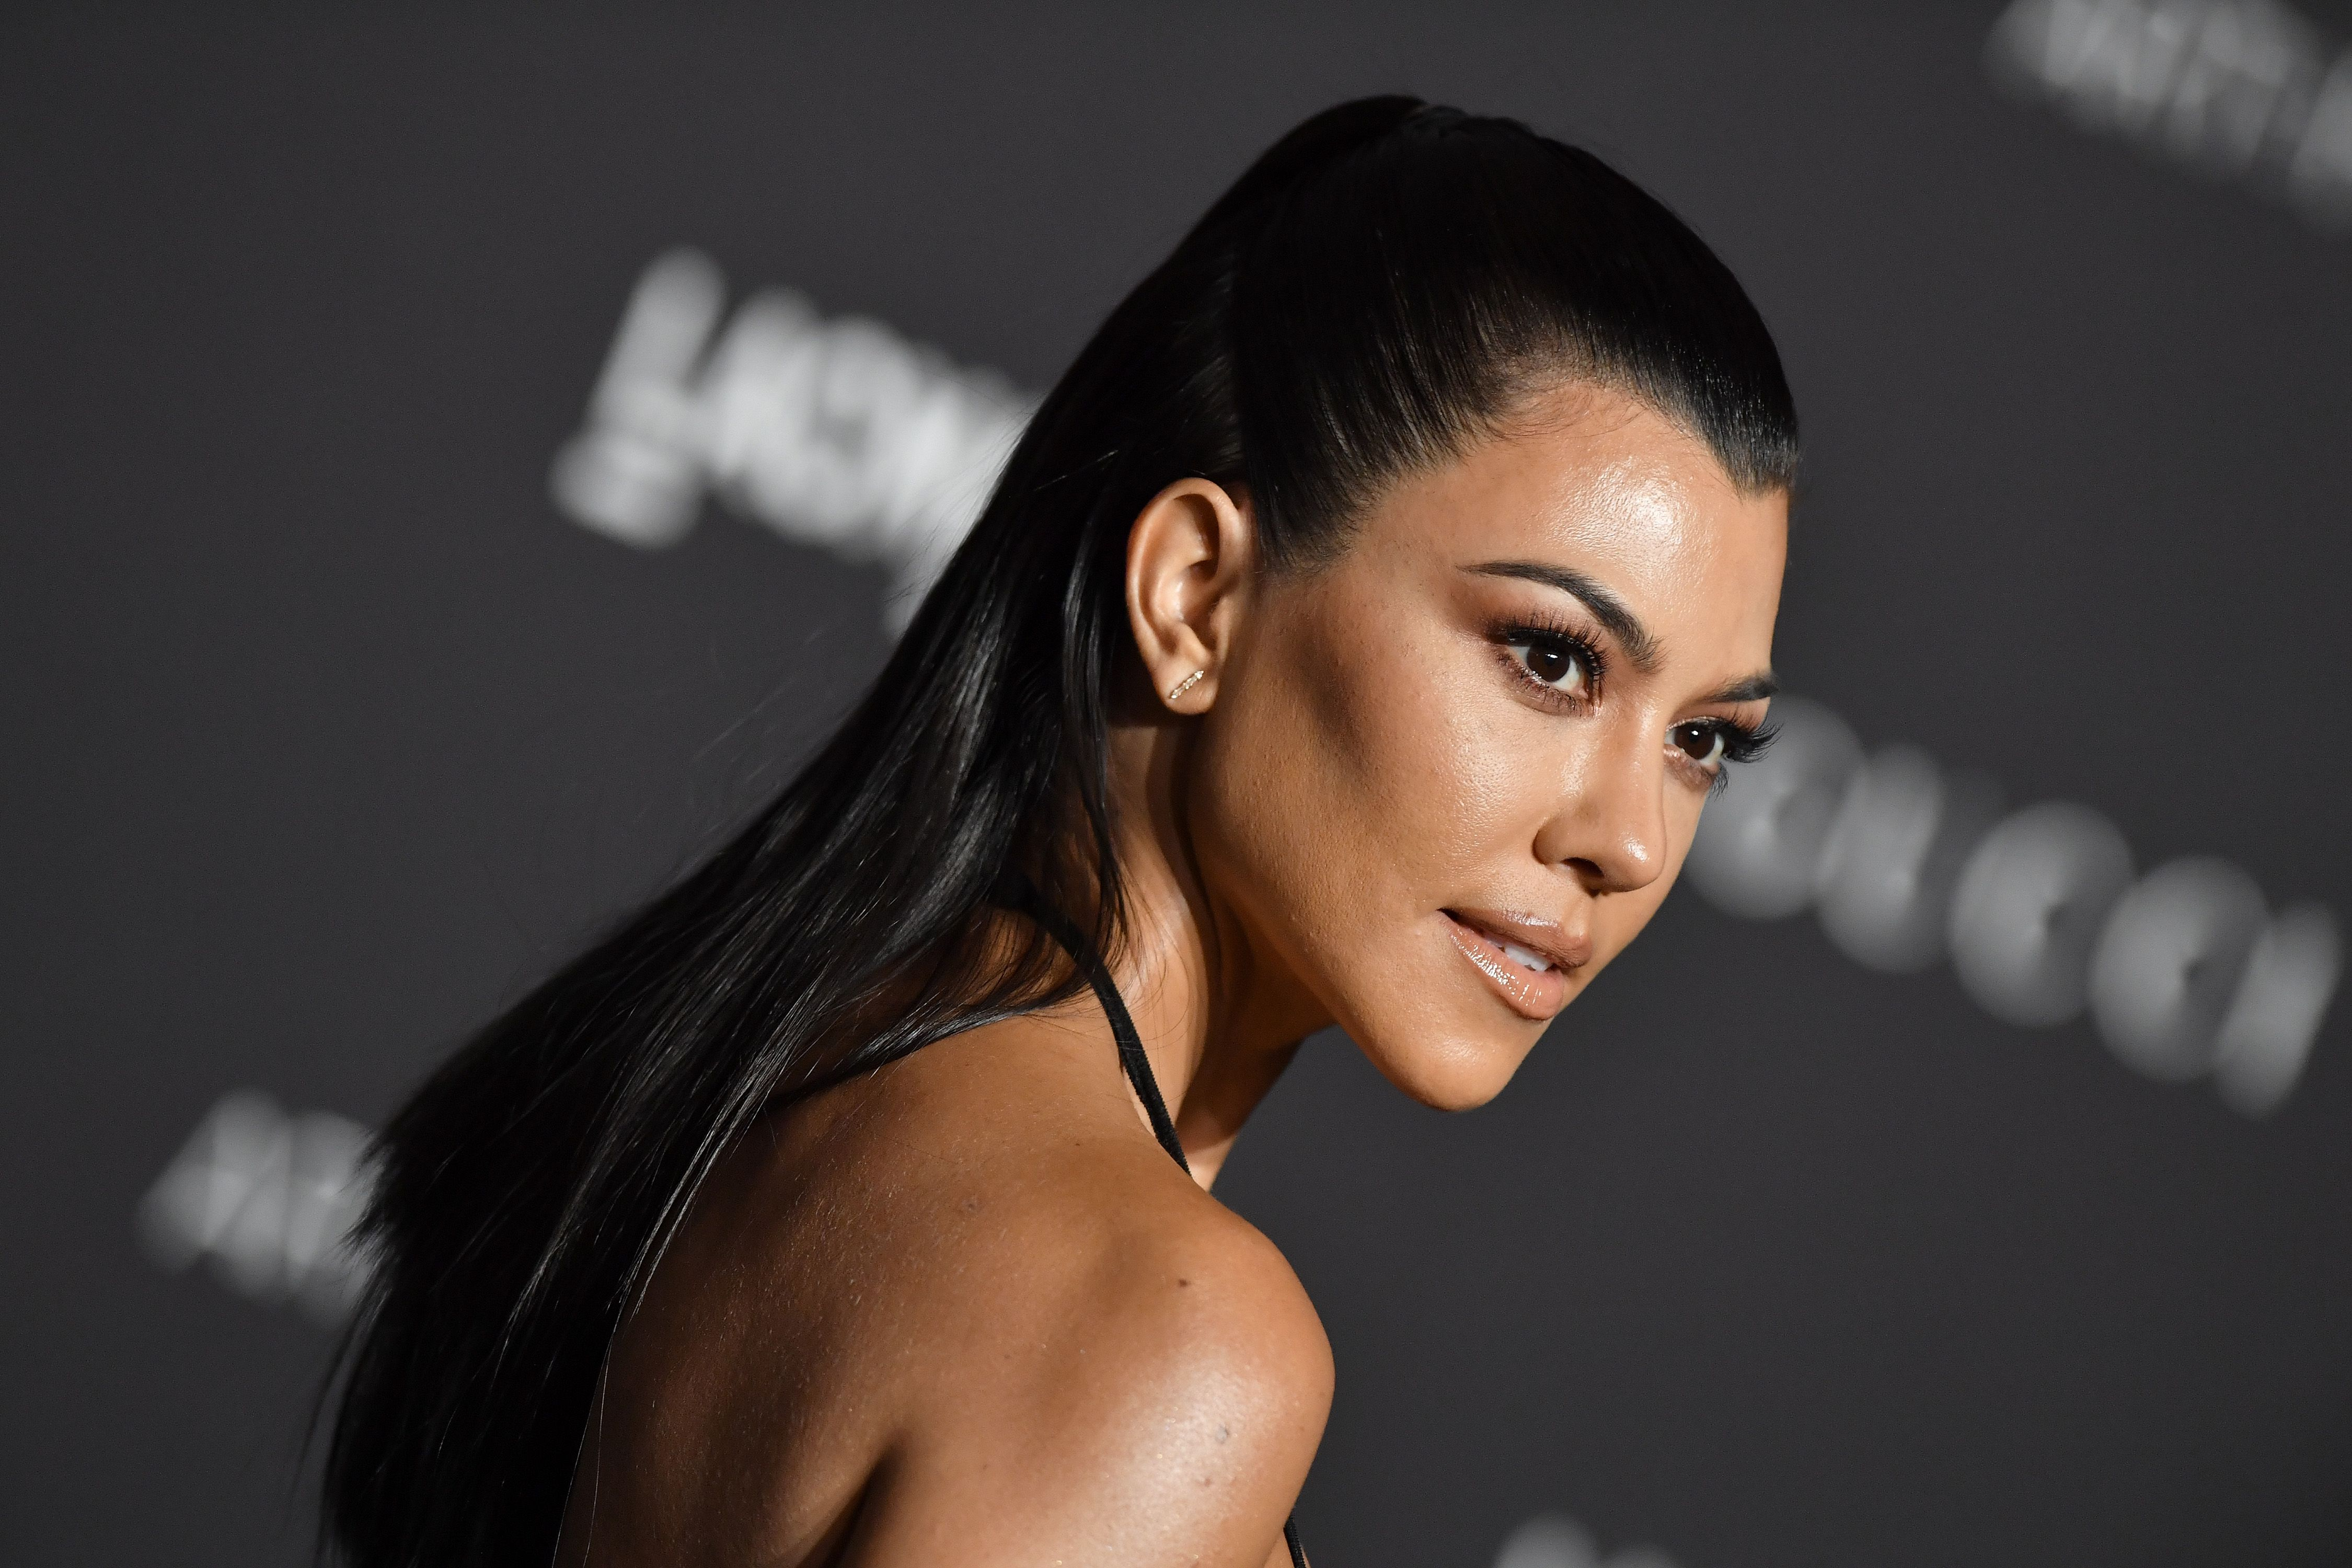 Kourtney Kardashian's NSFW 40th Birthday Cake Was Just 1 Of The Insane Treats Served At Her Party